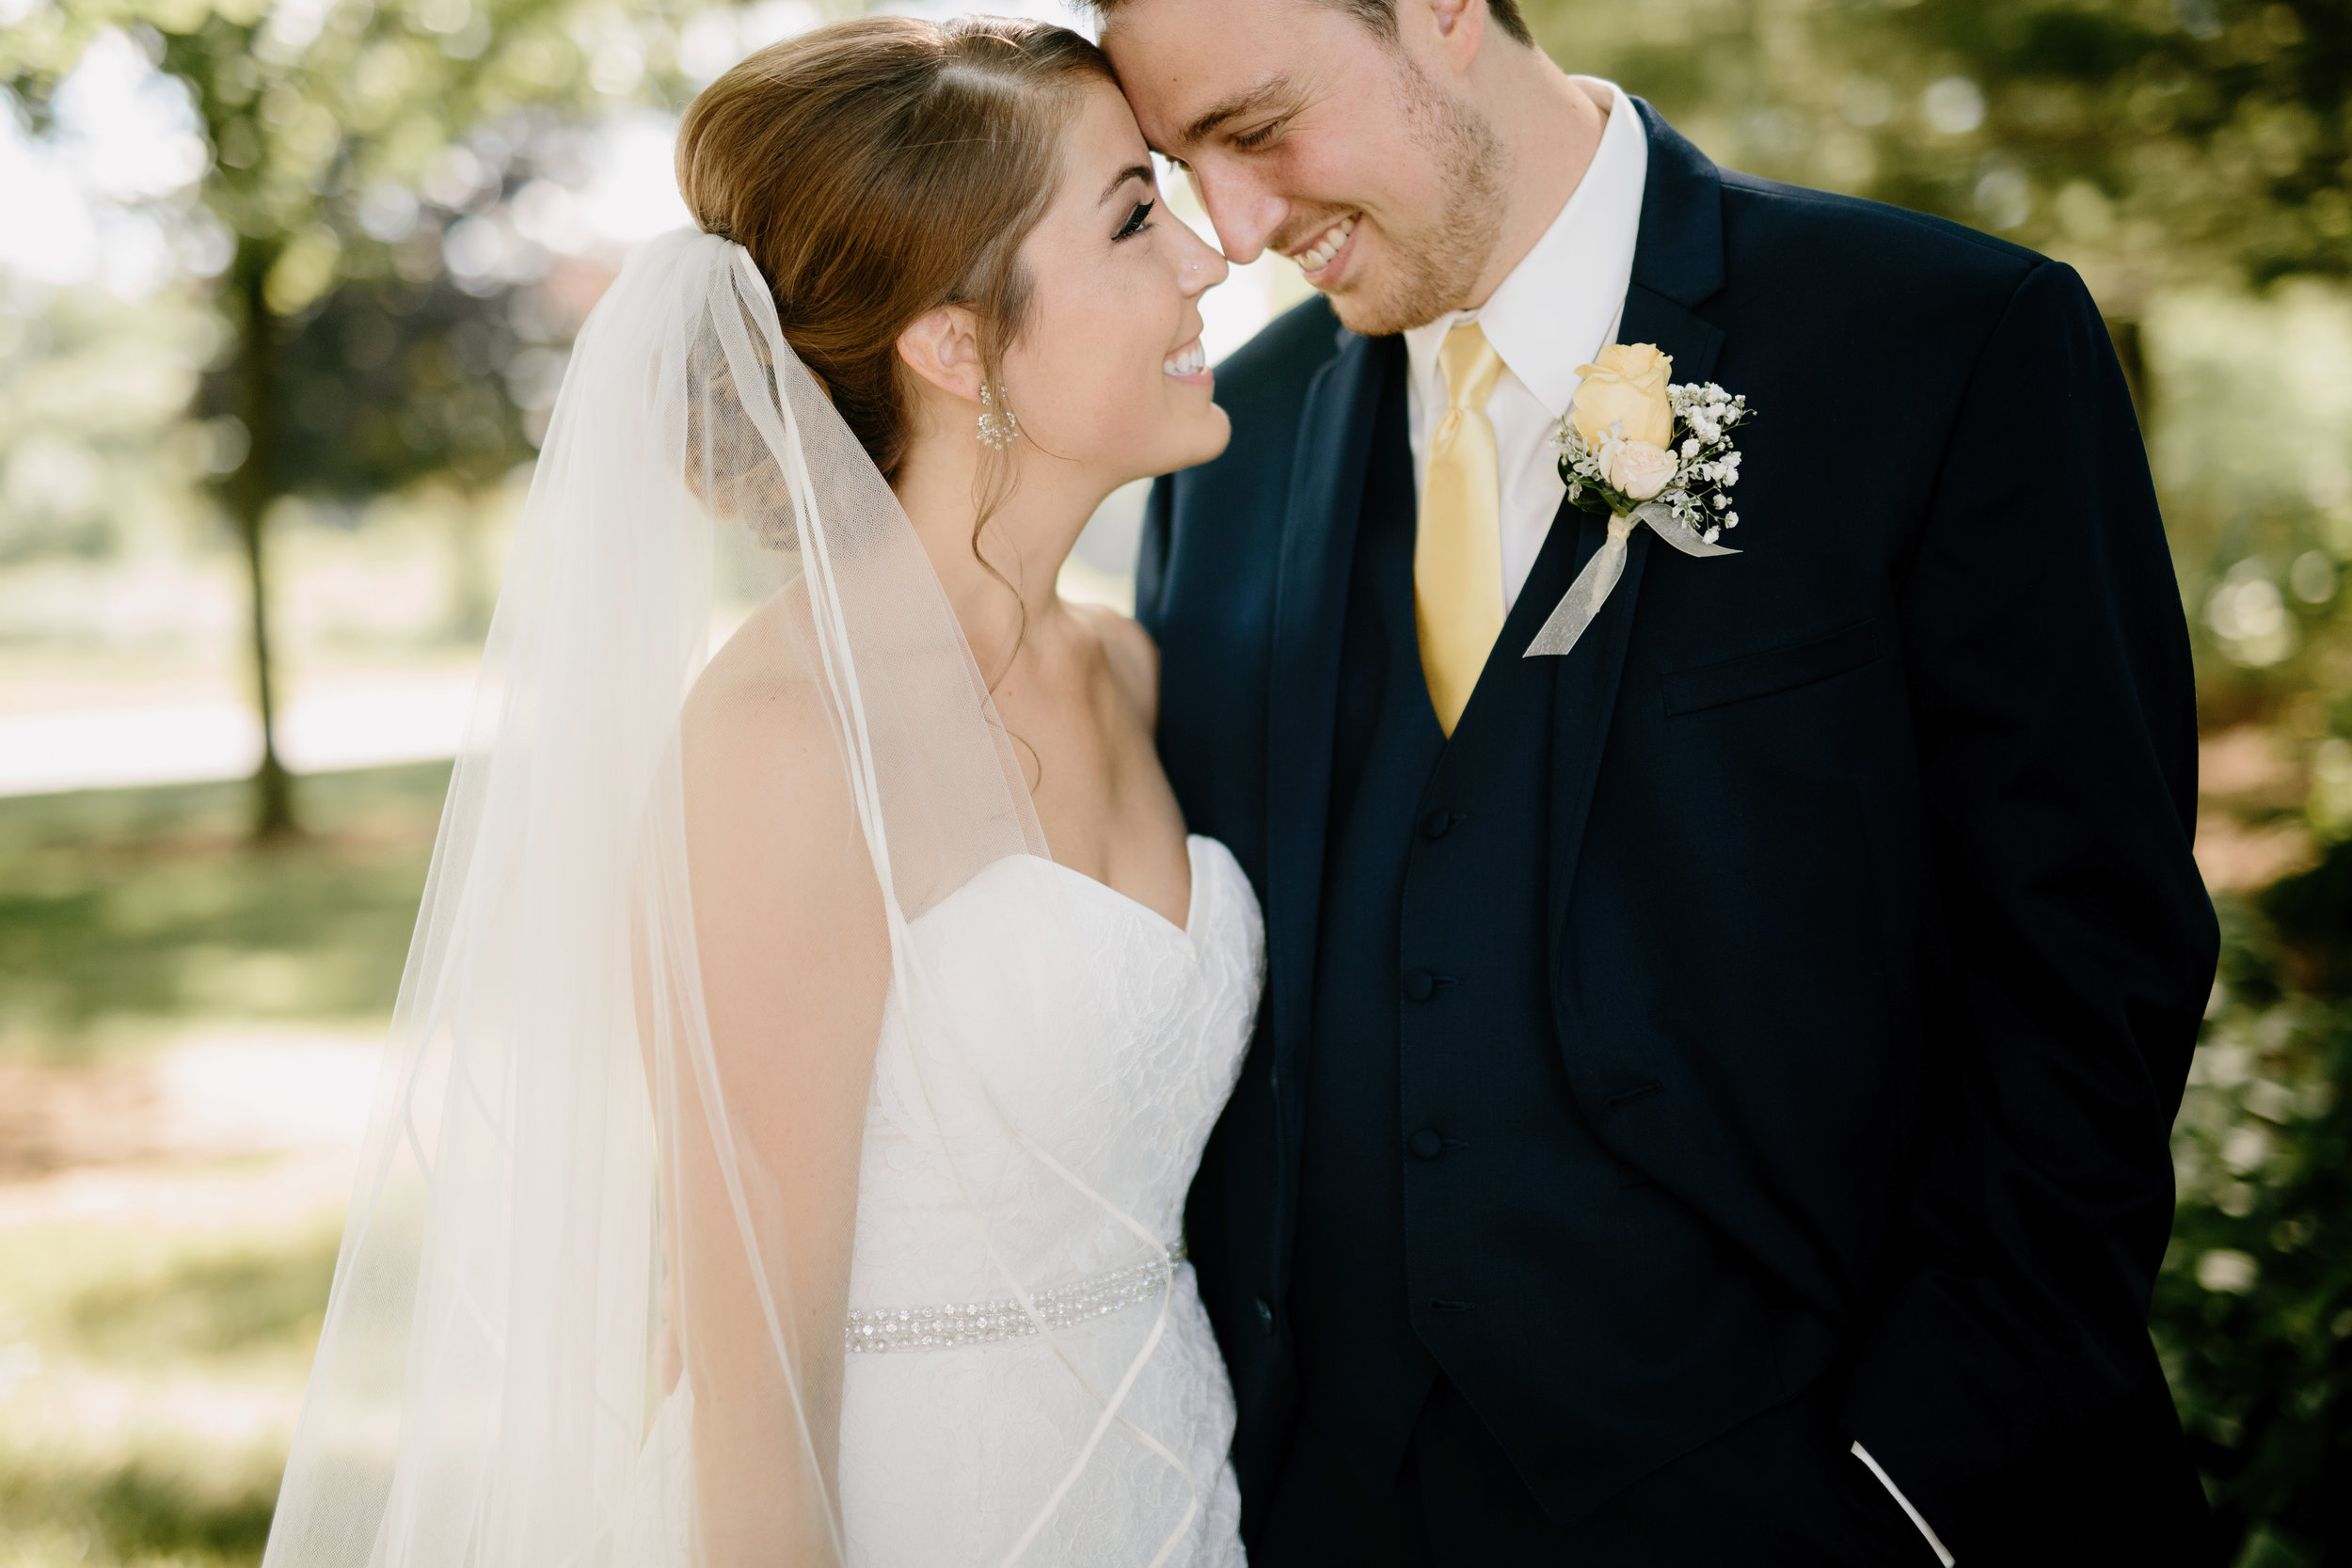 Design and Styling - We believe that a beautiful aesthetic and thoughtful details visually illustrate the true heart behind your wedding celebration. We'll work with you to create a beautiful, personal and custom wedding celebration design, including stationary and paper goods, linens, florals and more.investment starting at $2,800